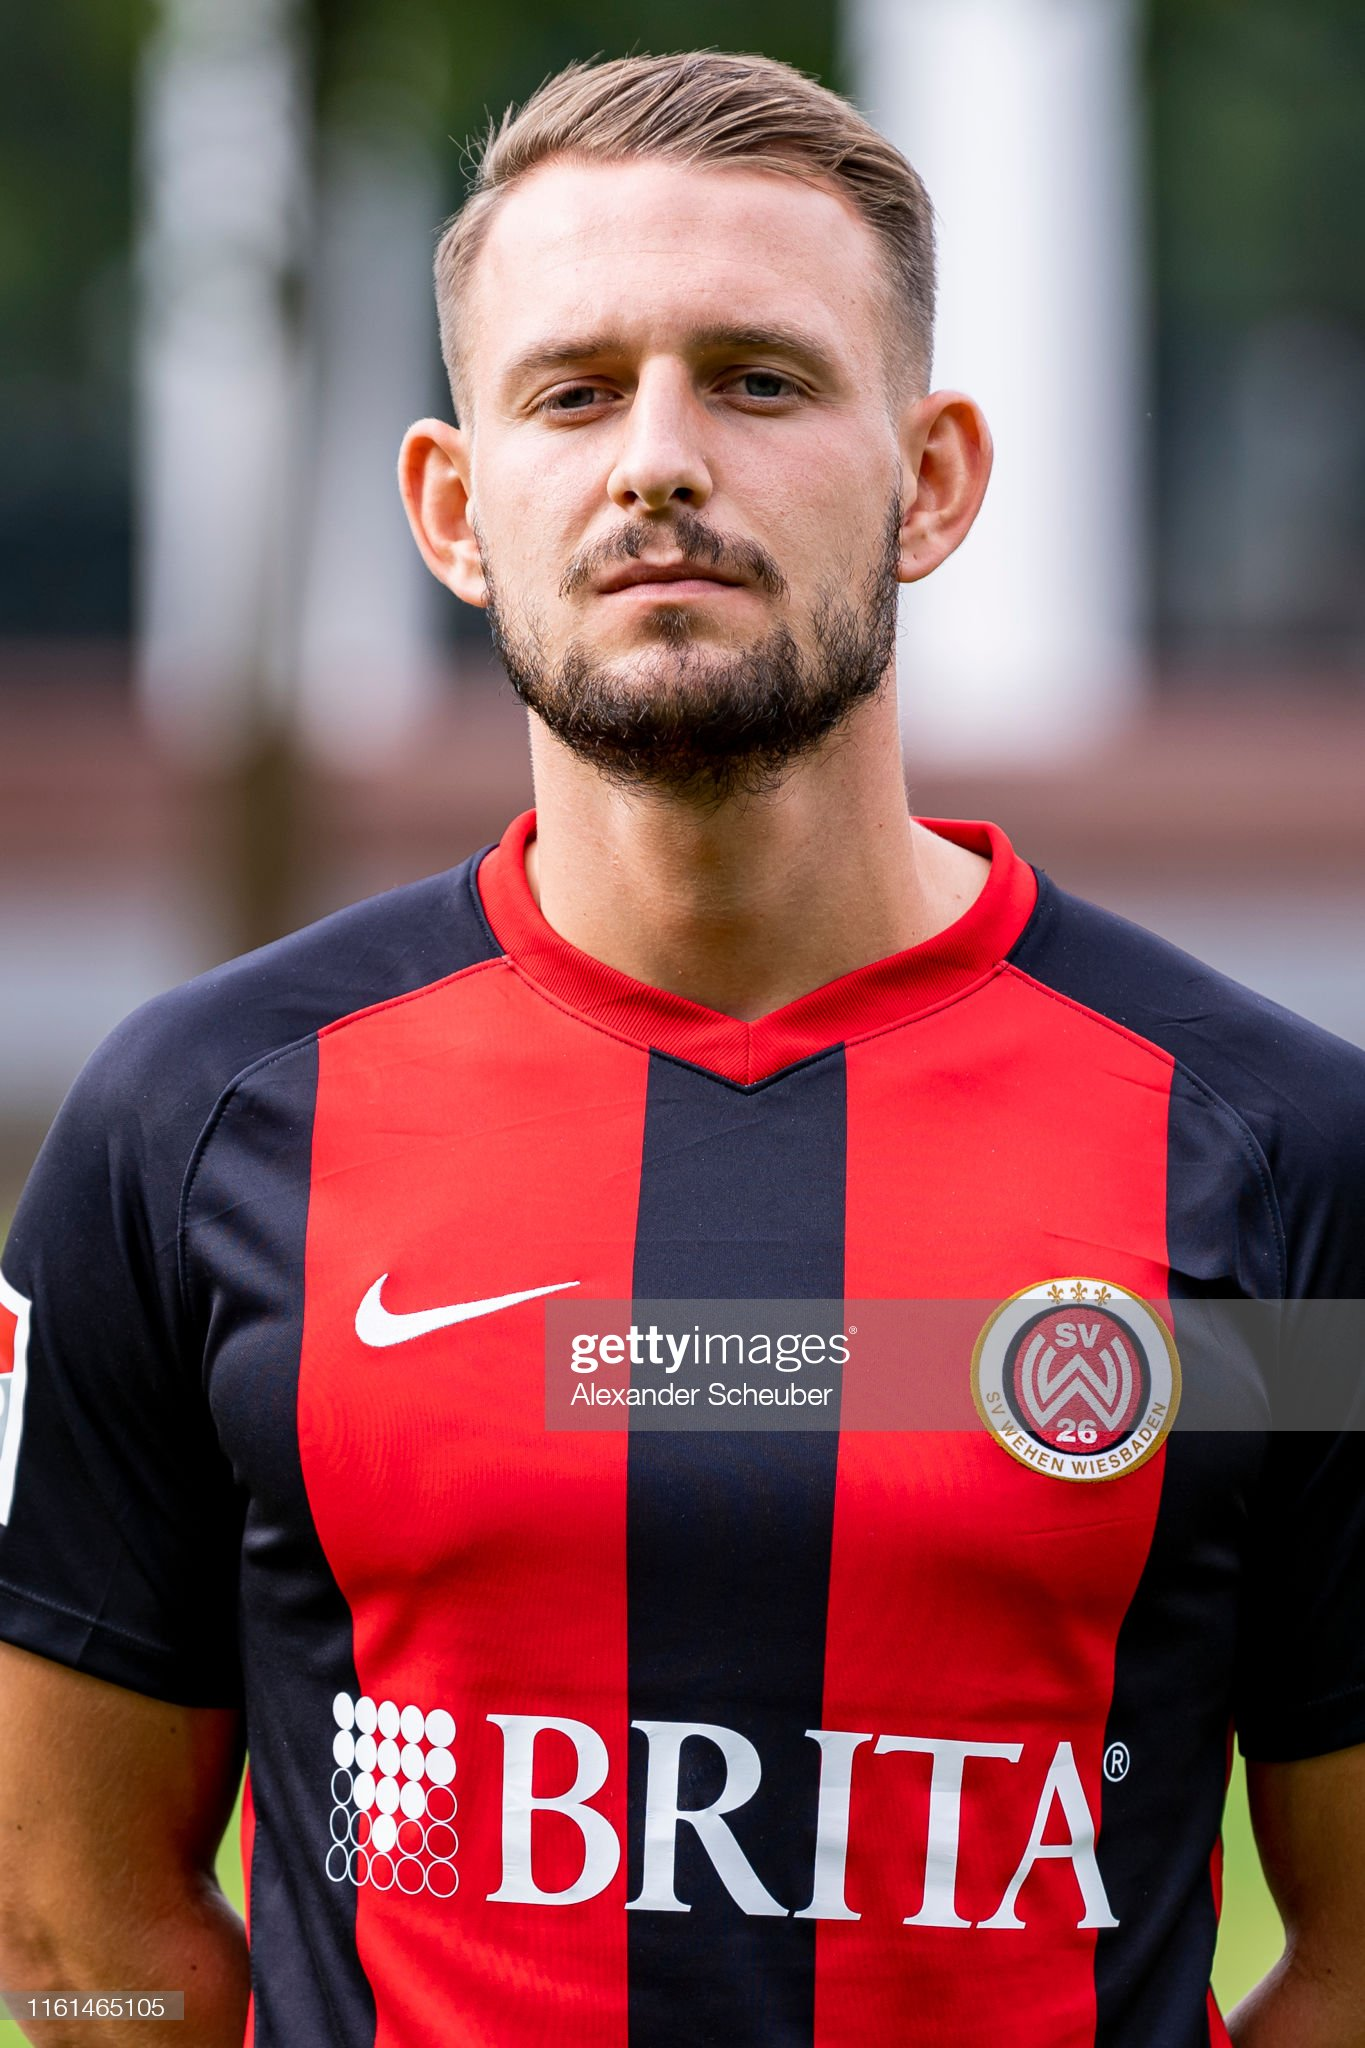 https://media.gettyimages.com/photos/marc-wachs-of-wehen-wiesbaden-poses-during-the-team-presentation-at-picture-id1161465105?s=2048x2048